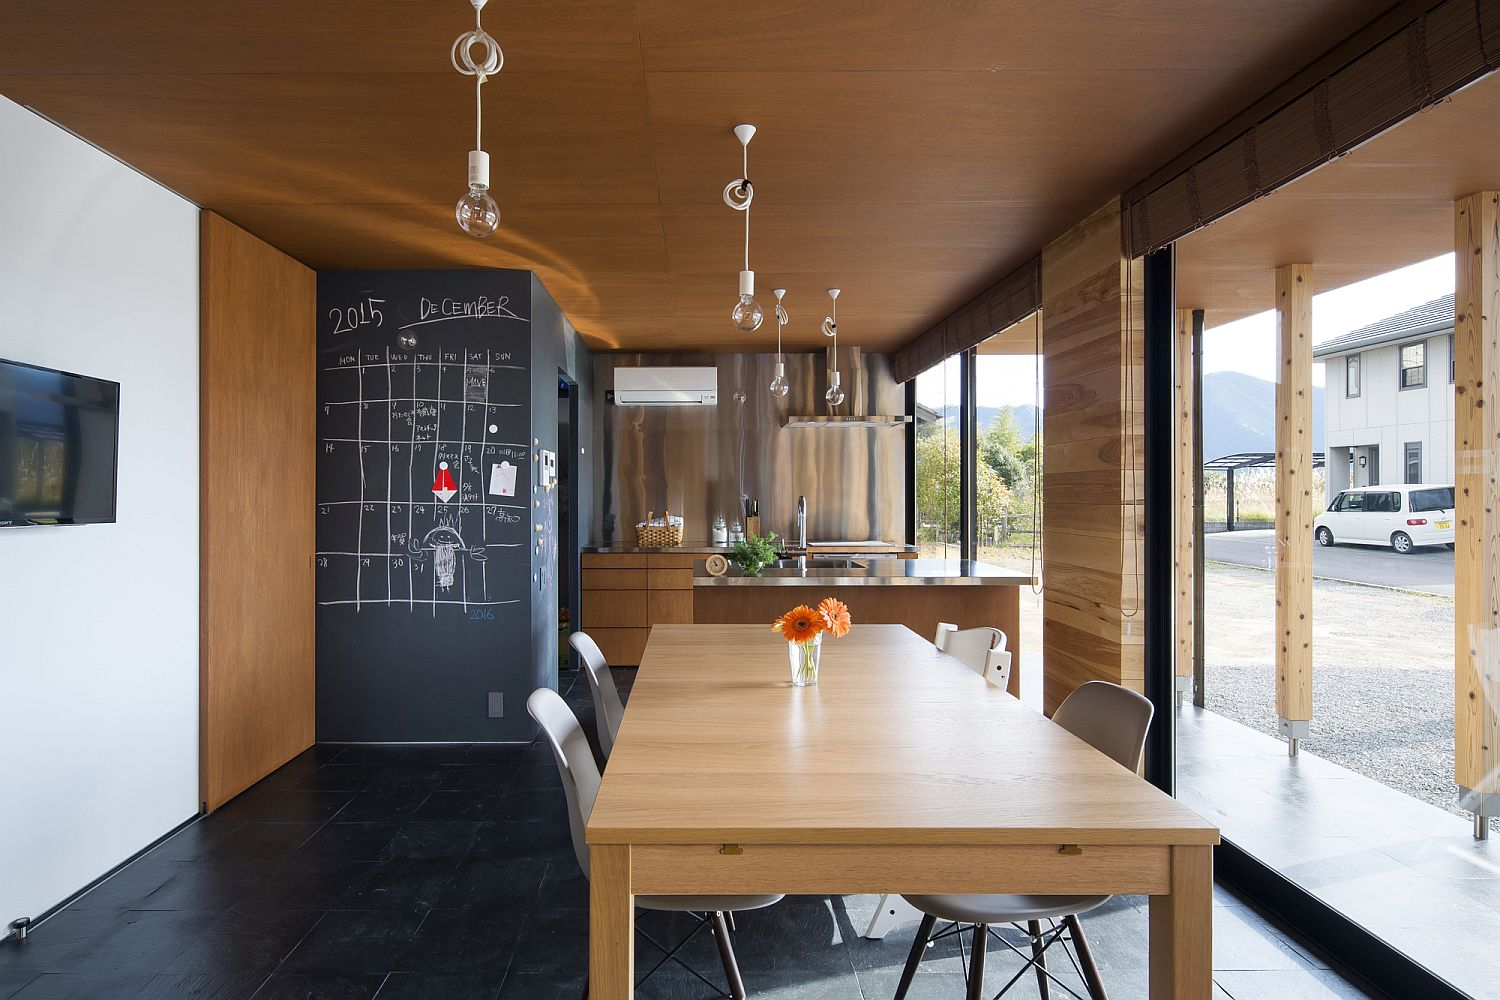 Kitchen and dining area of the Japanese home with cedar ceiling